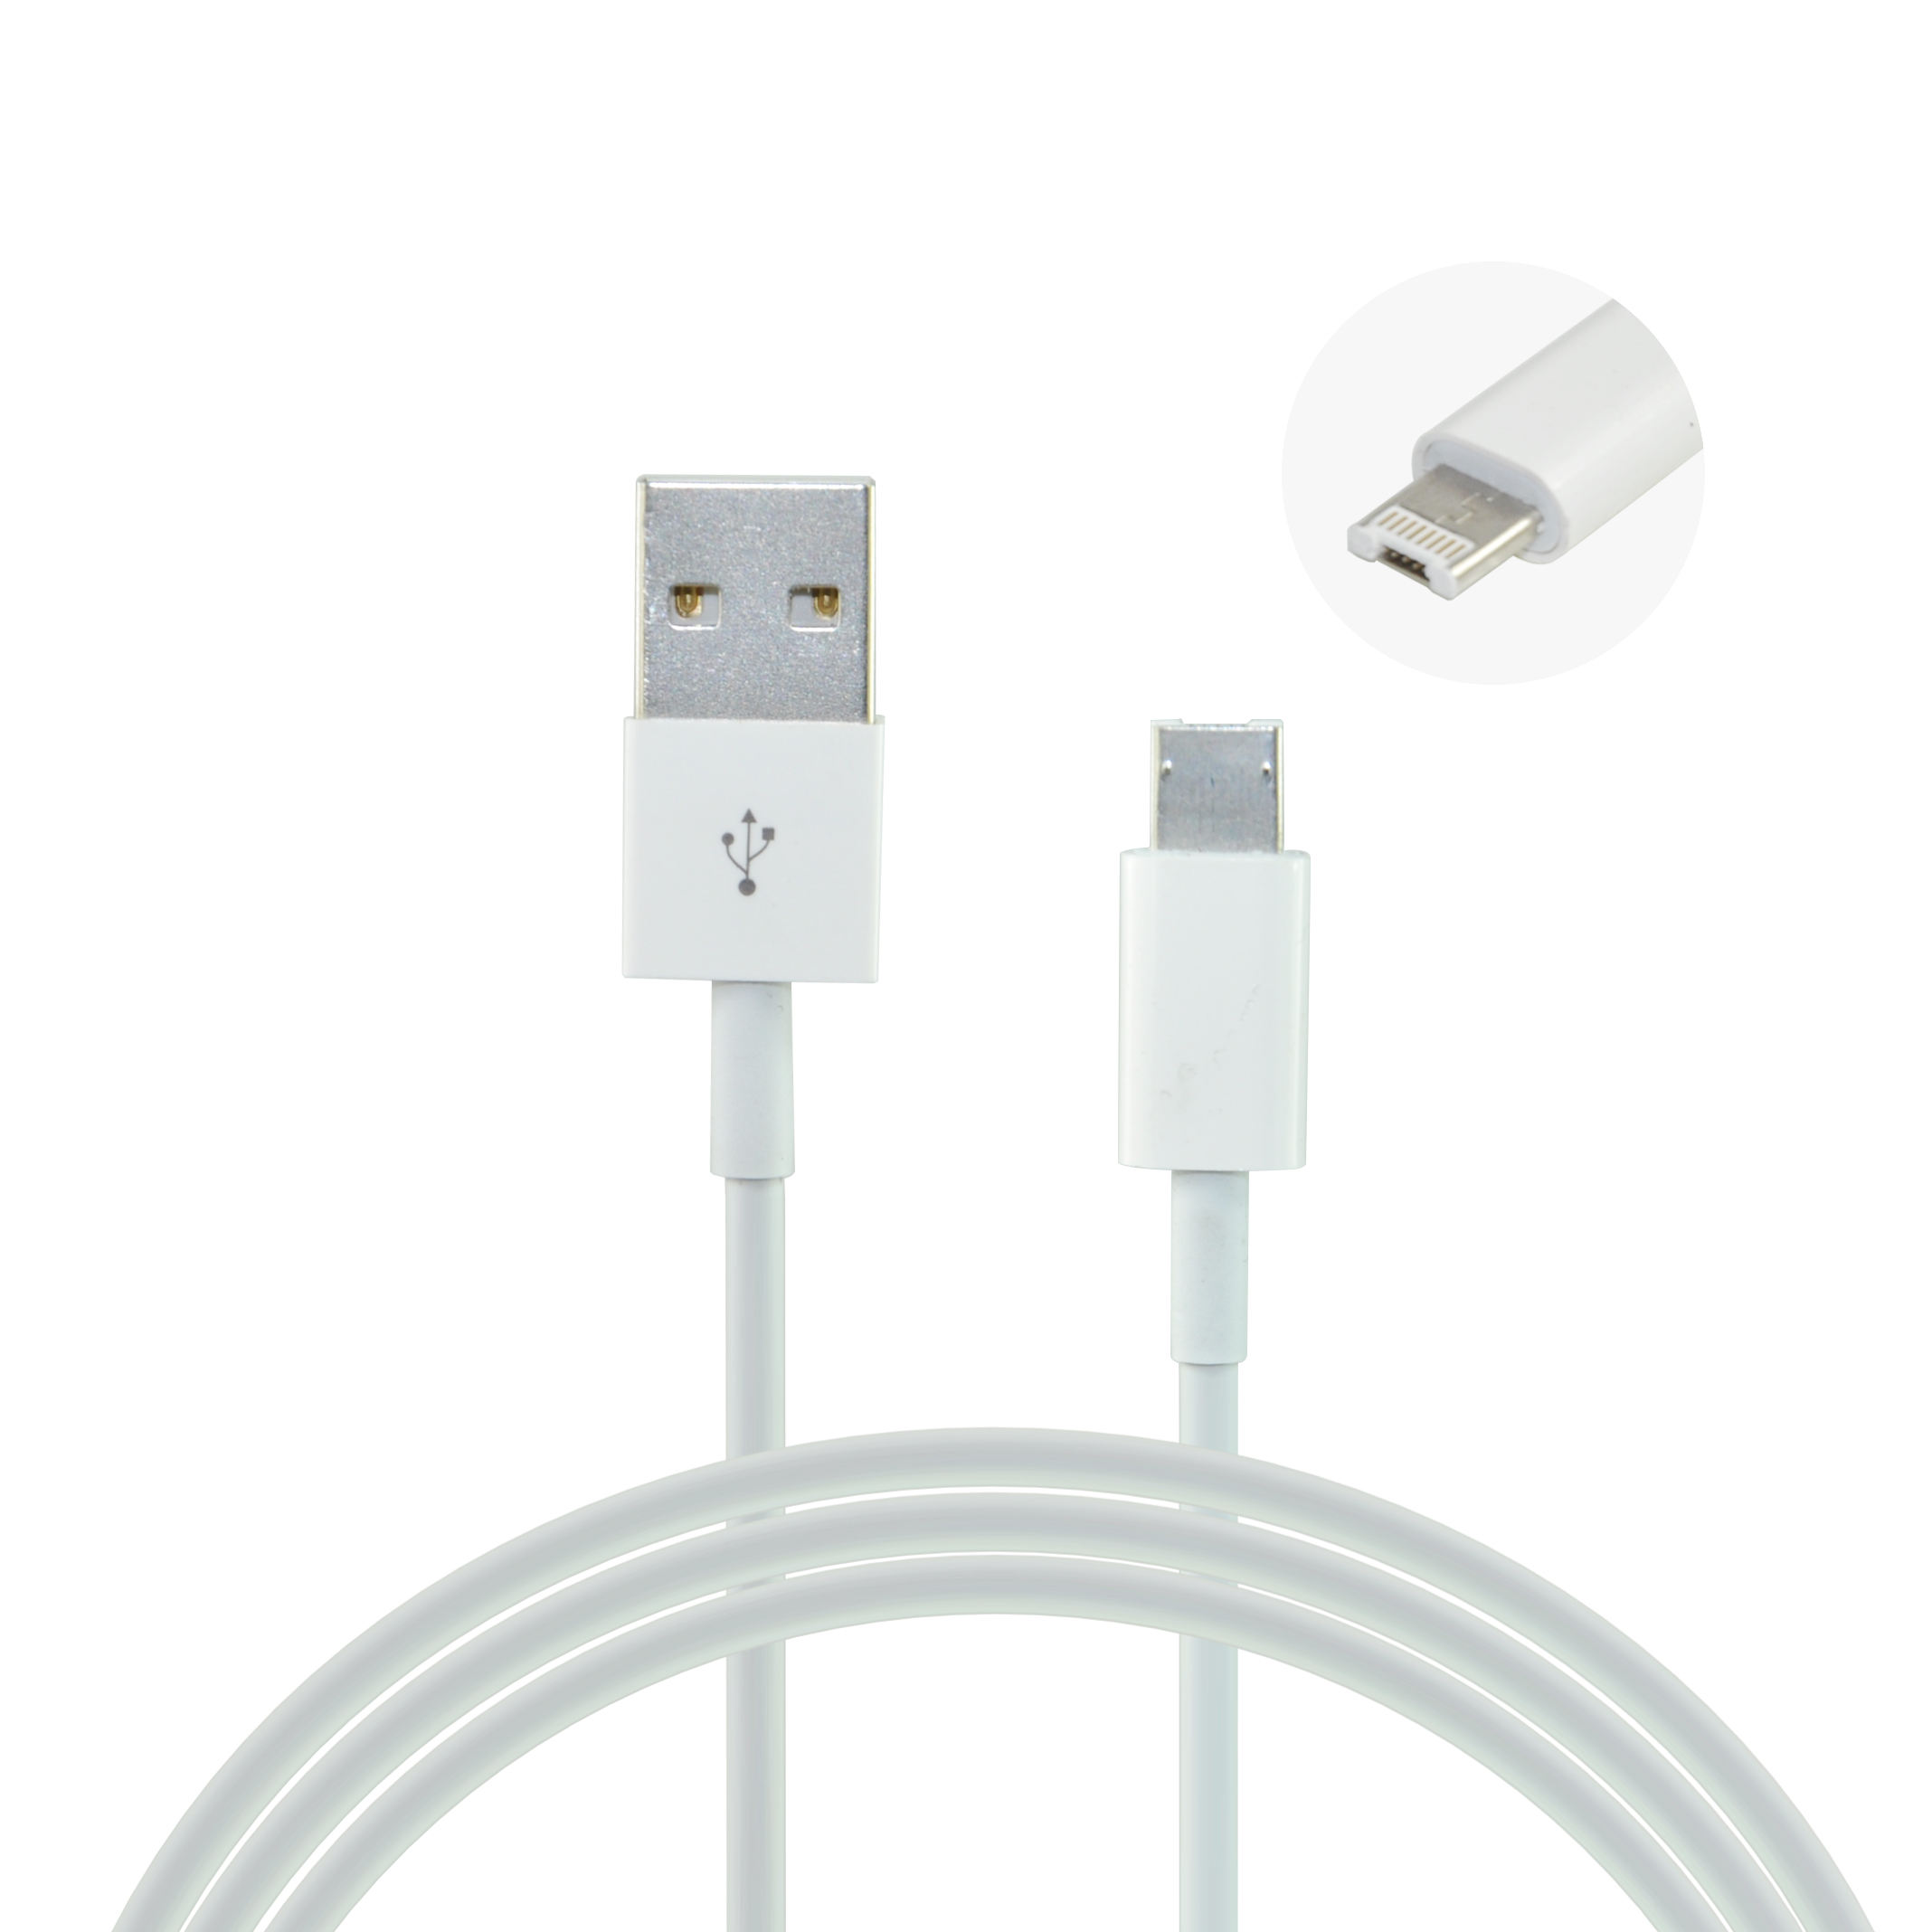 MFi Factory USB-A Cable for Iphone/Apple/Lightning MFi Certified TPE Material 100cm OEM Supported